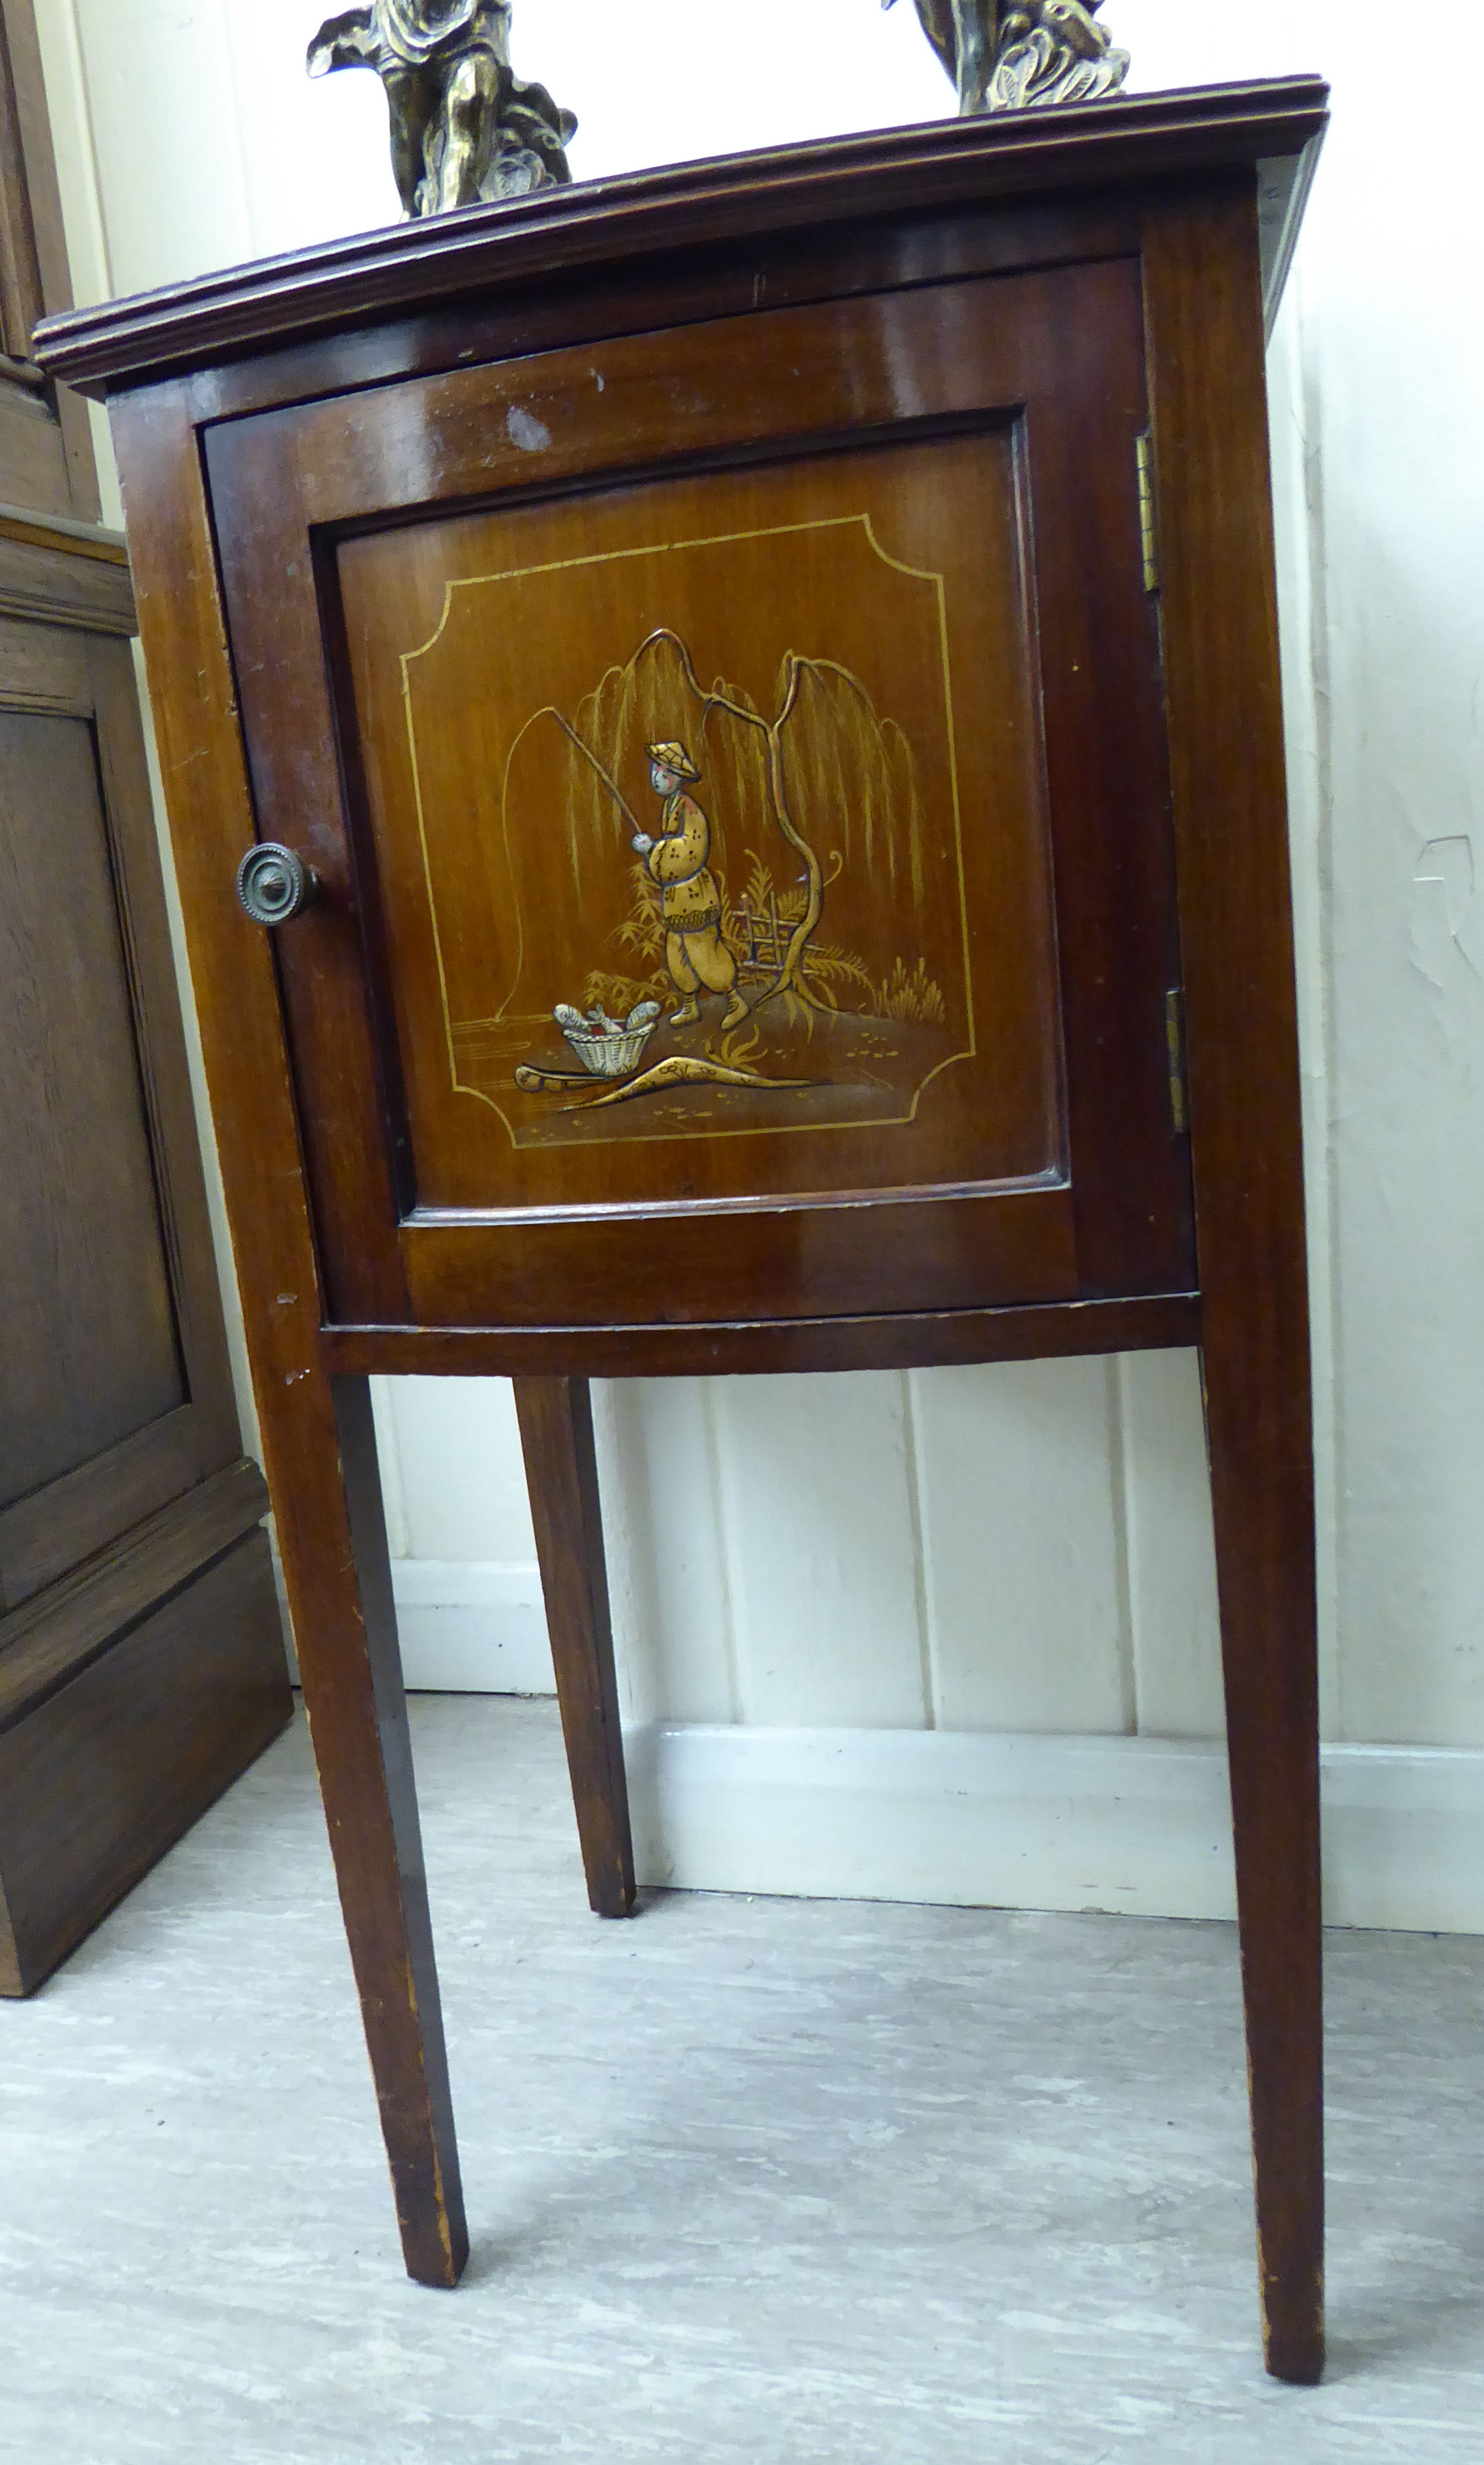 Lot 32 - A 1930s/50s Japanese inspired mahogany and gilded bow front bedside cupboard with a single panelled